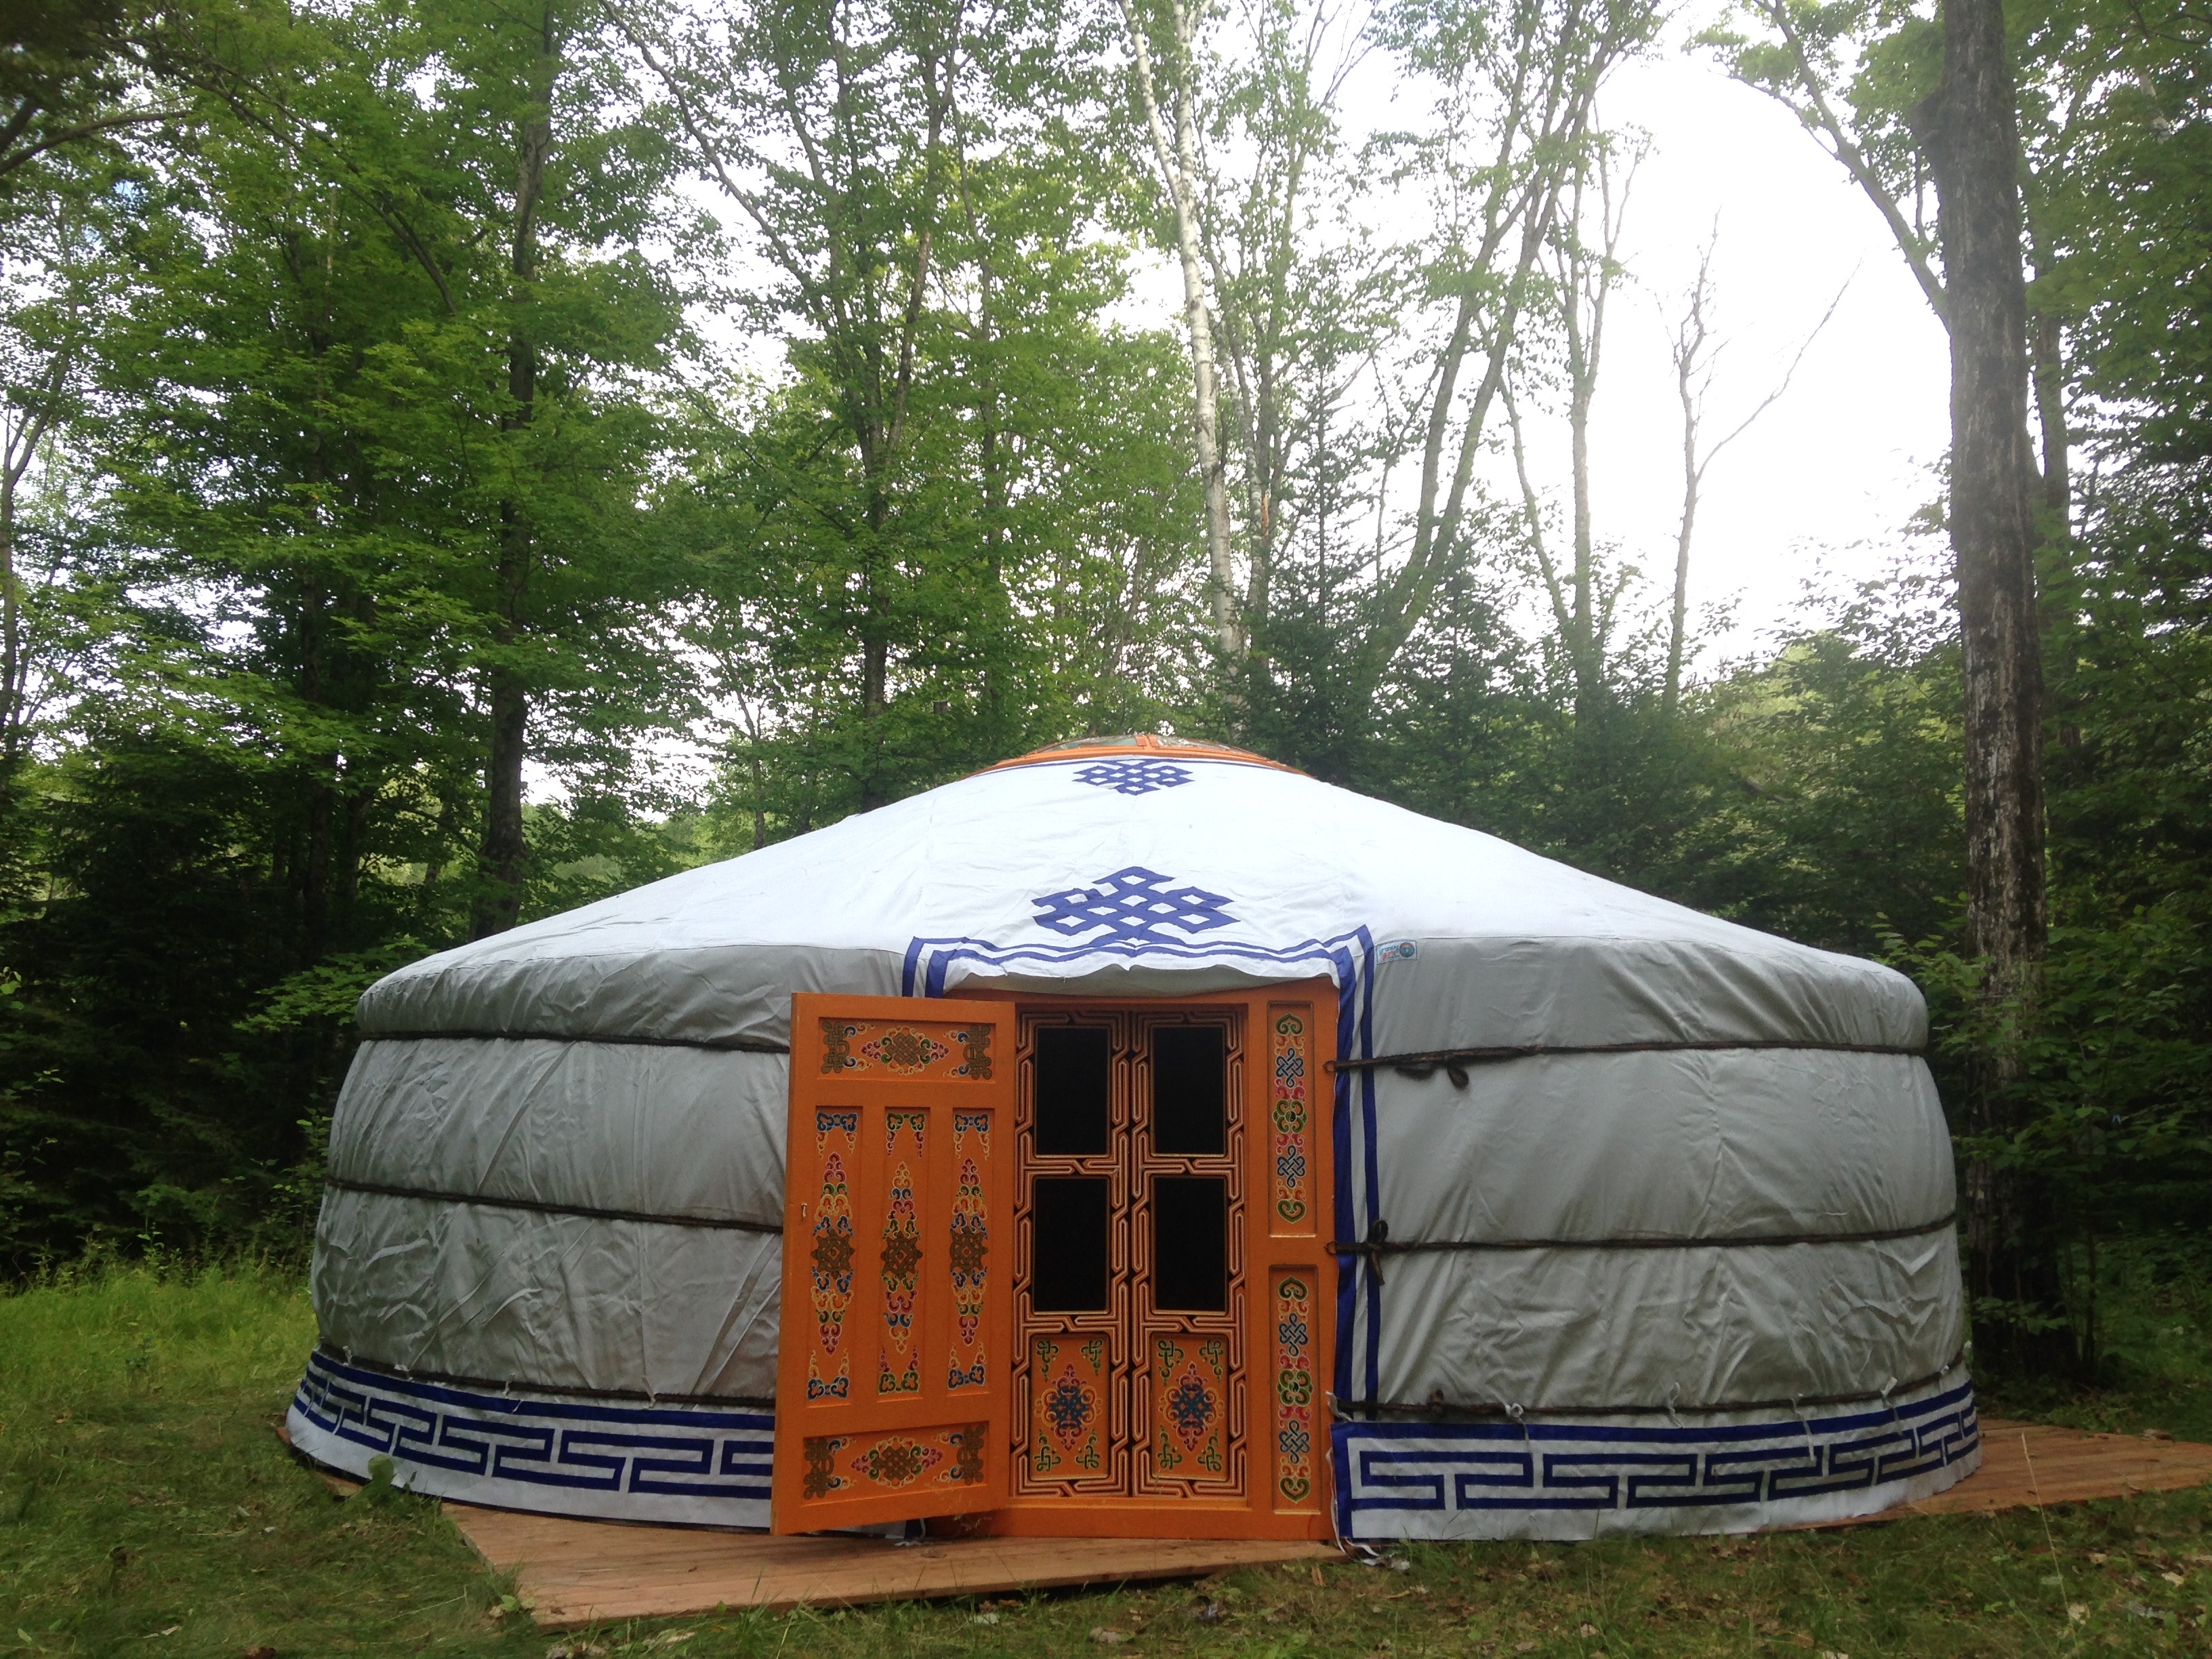 Groovy Yurt in the woods